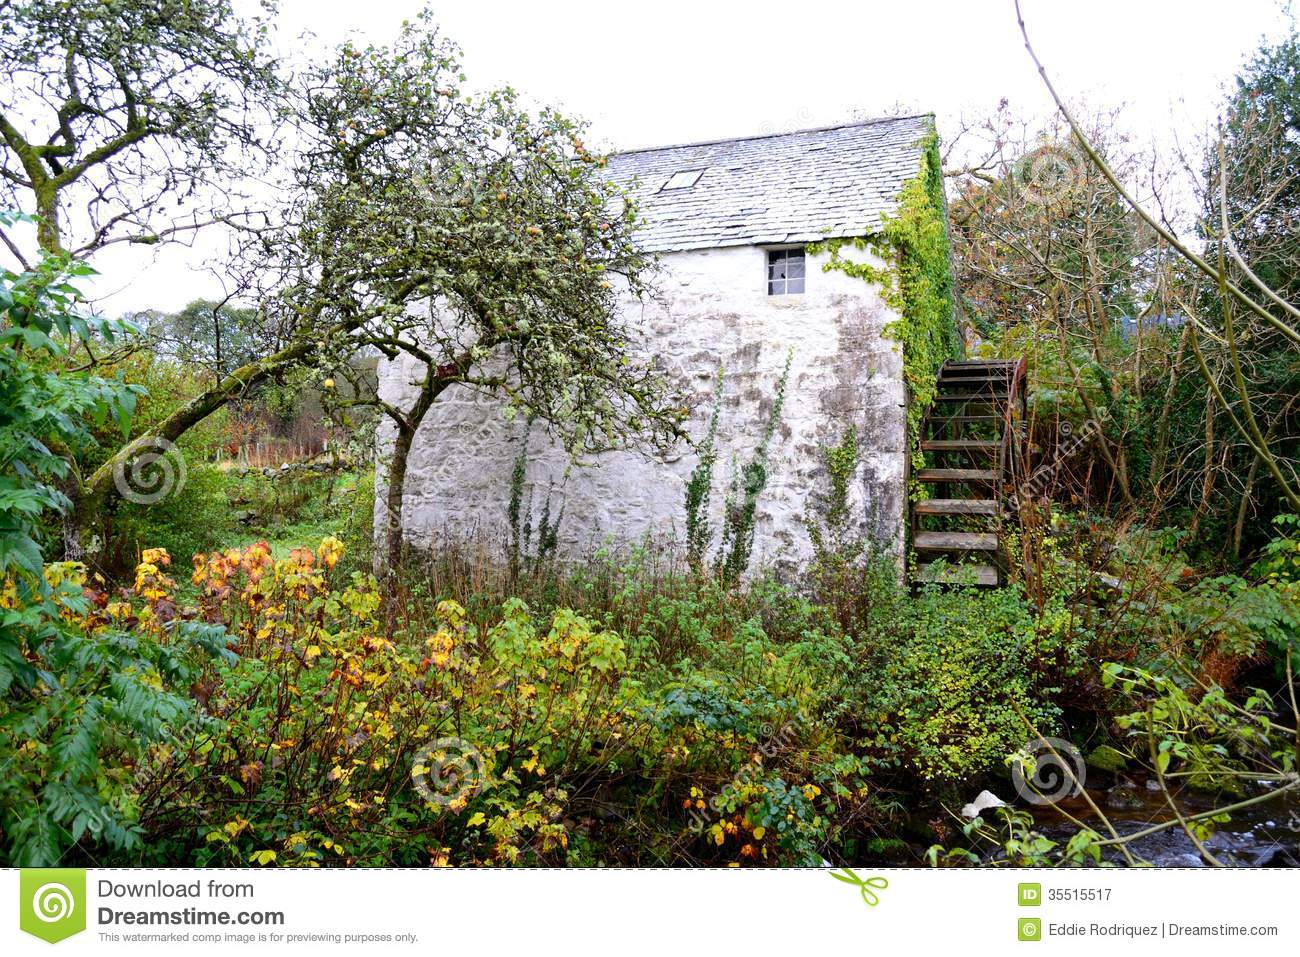 Royalty Free Stock Photography Old Scottish Water Wheel View Original Mill House Sothern Scotland Small River Flowing Image35515517 also Poplar besides Orchid Lane Concept Plan For Lot In Preston Hollow furthermore Outlook 26 moreover 8326597. on preston house plan